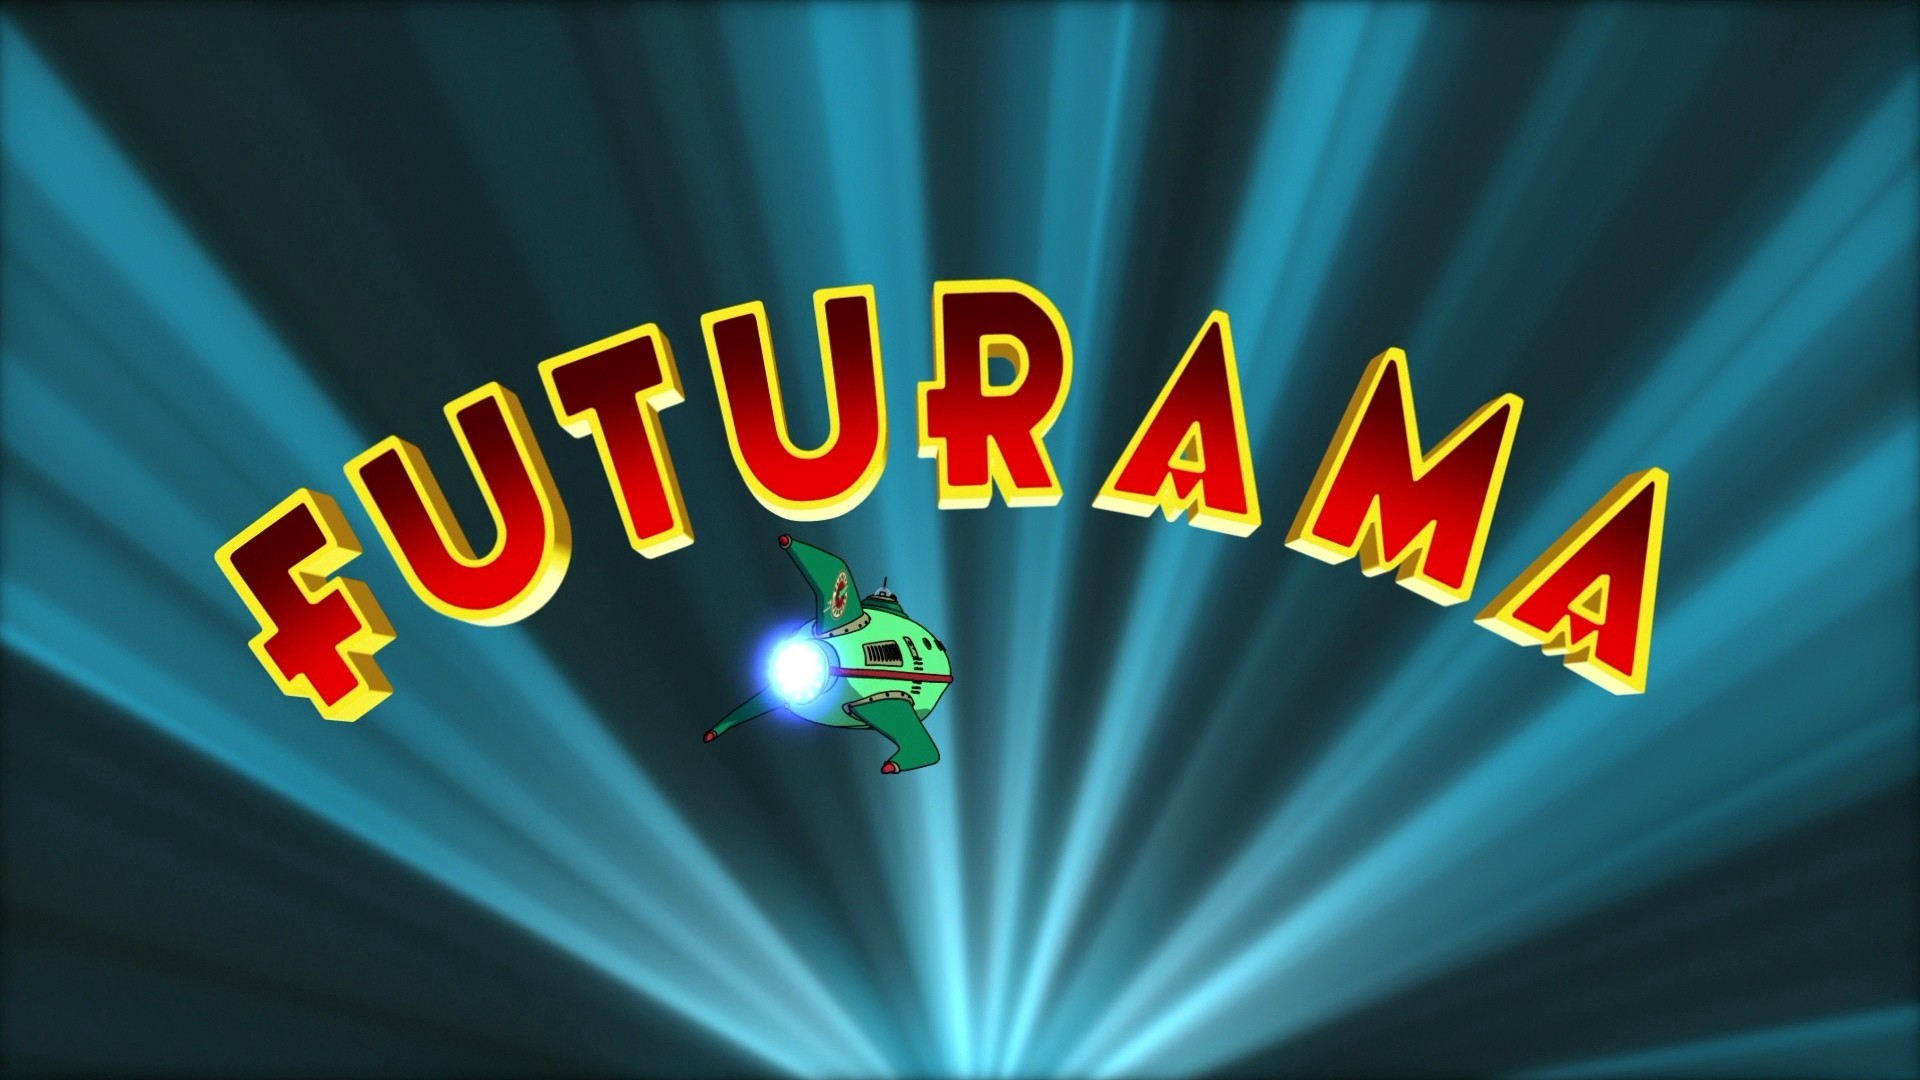 1920x1080  Wallpaper futurama, mission, logo, cartoon